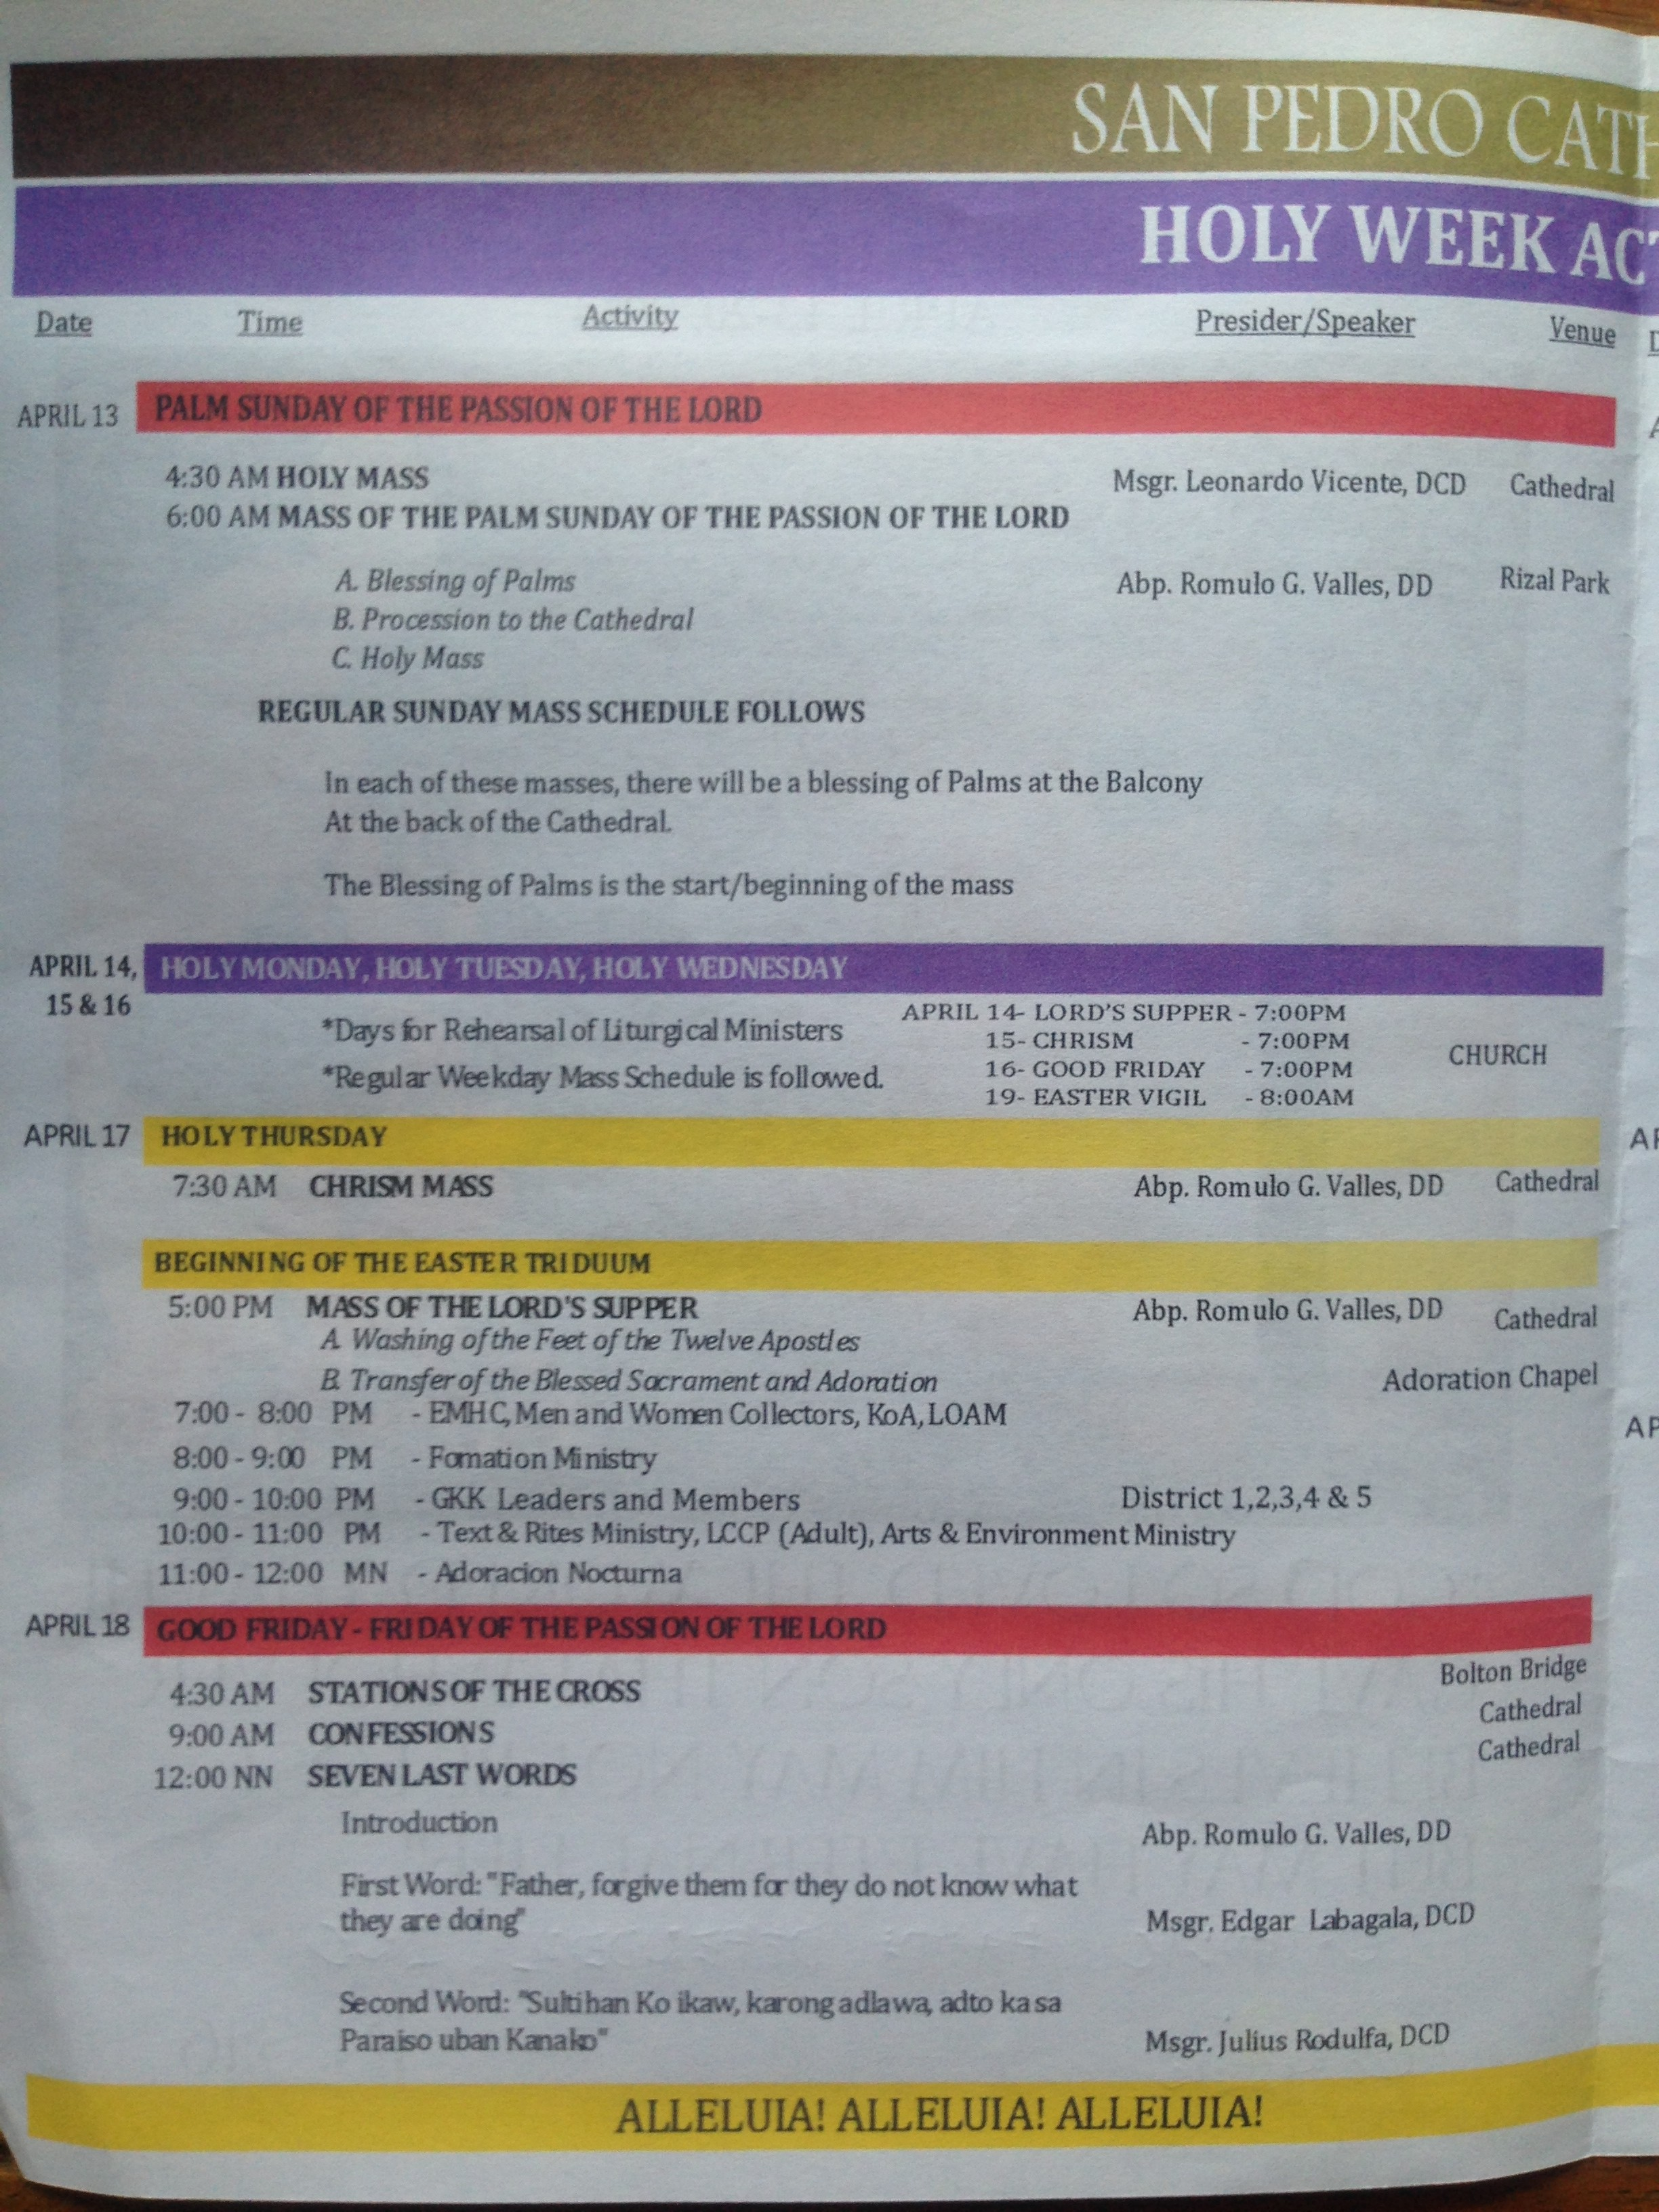 San Pedro Cathedral Holy Week 2014 Schedule 1